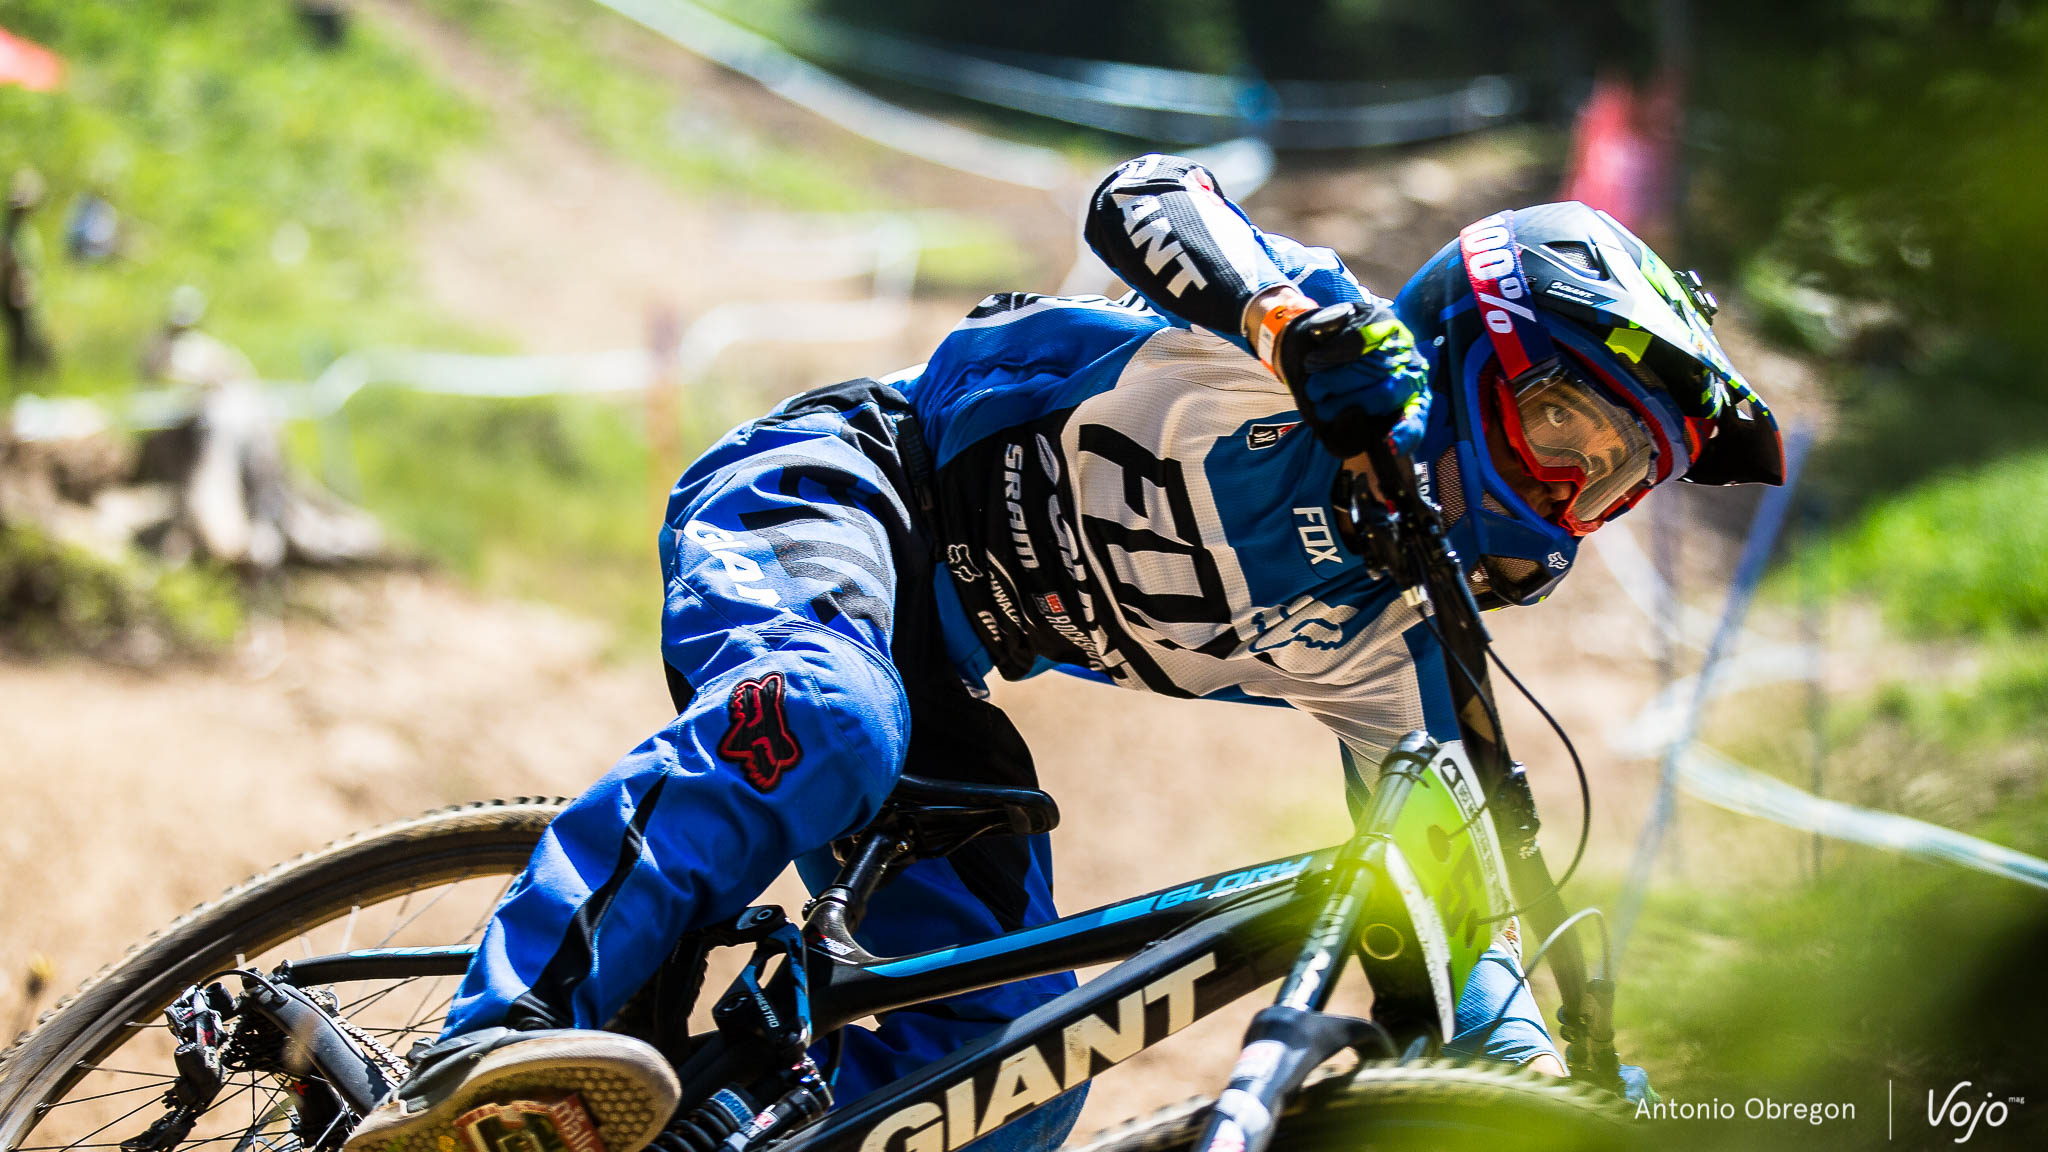 Lenzerheide_UCI_World_Cup_DH_2015_final_Porfoli_Junior_Copyright_Antonio_Obregon_VojoMag-6